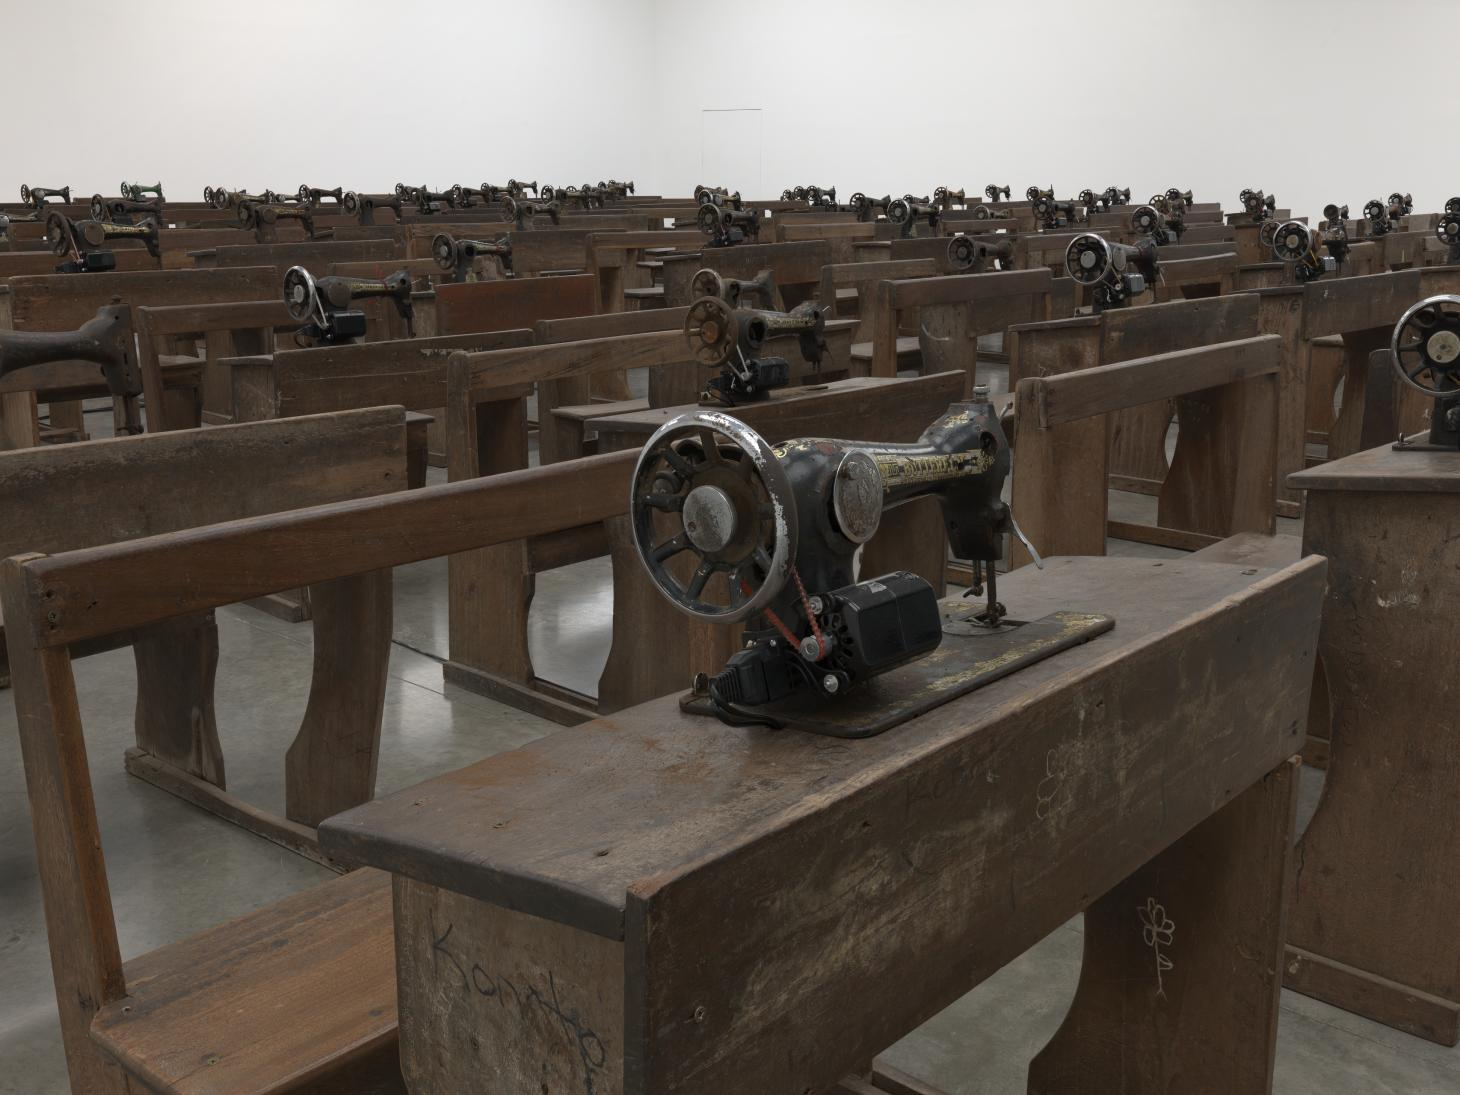 Close up of wooden desks and tables with sewing machines, installation at White Cube, by Ibrahim Mahama